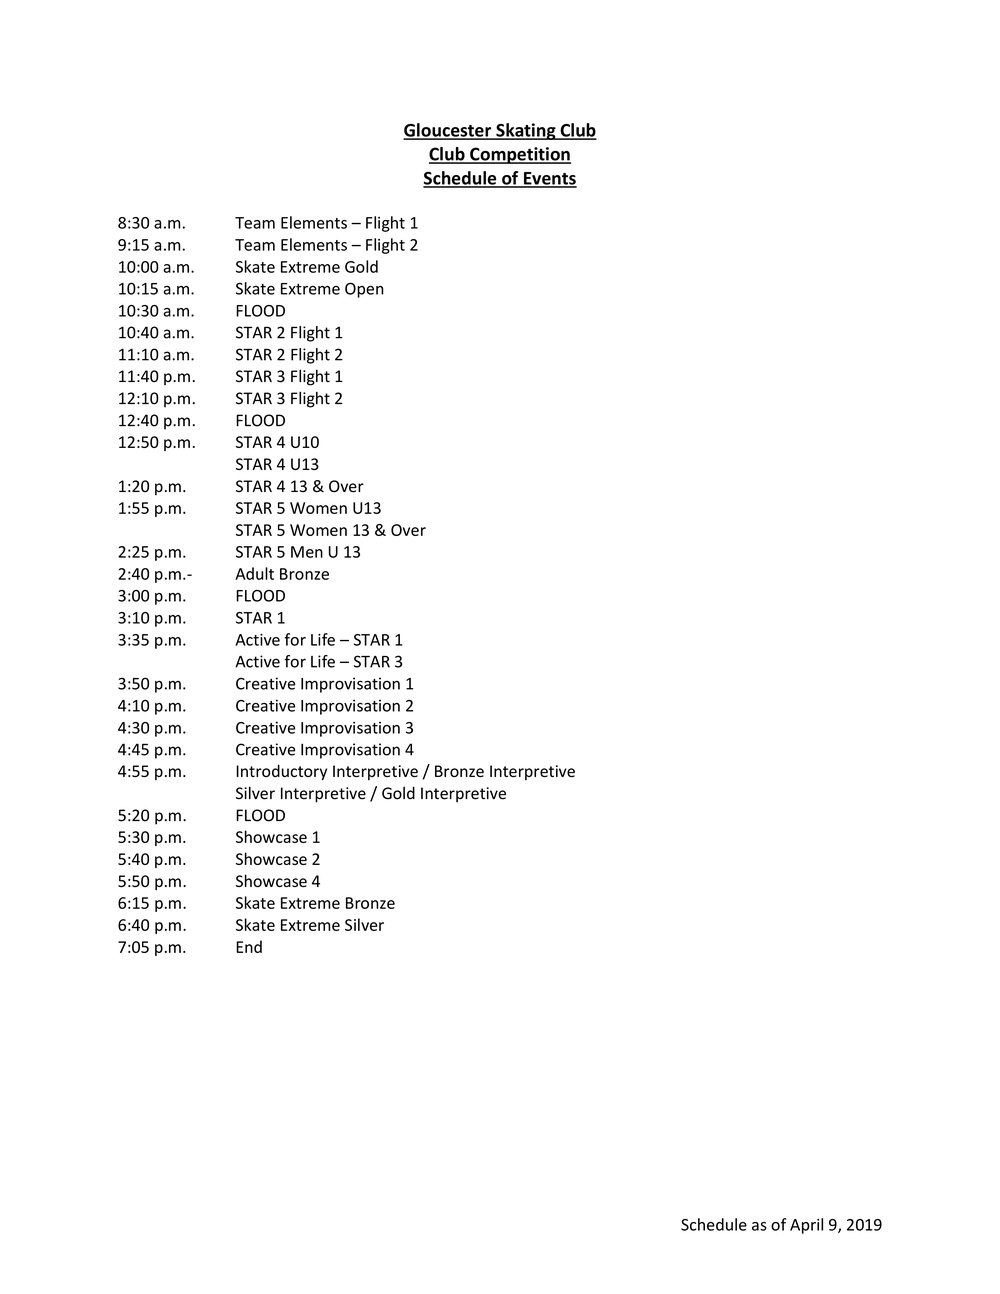 Schedule of Events - GSC Club Competition - April 2019 - 20190409.jpg